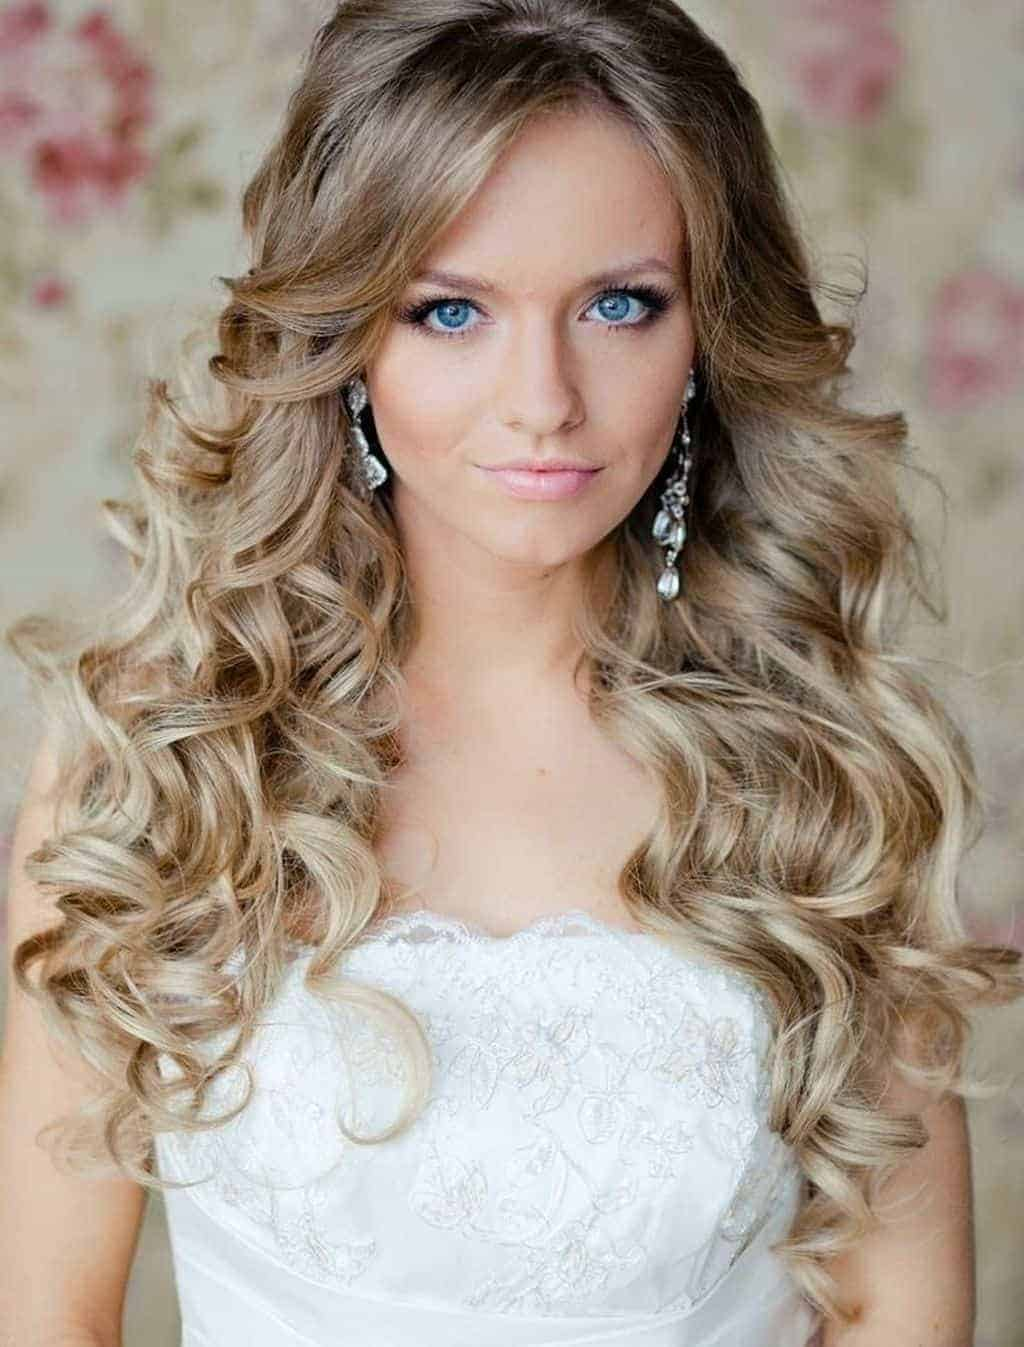 bridal hairstyles for long hair 2015, Women styles, hairstyles, makeup tutorials, fashion ...